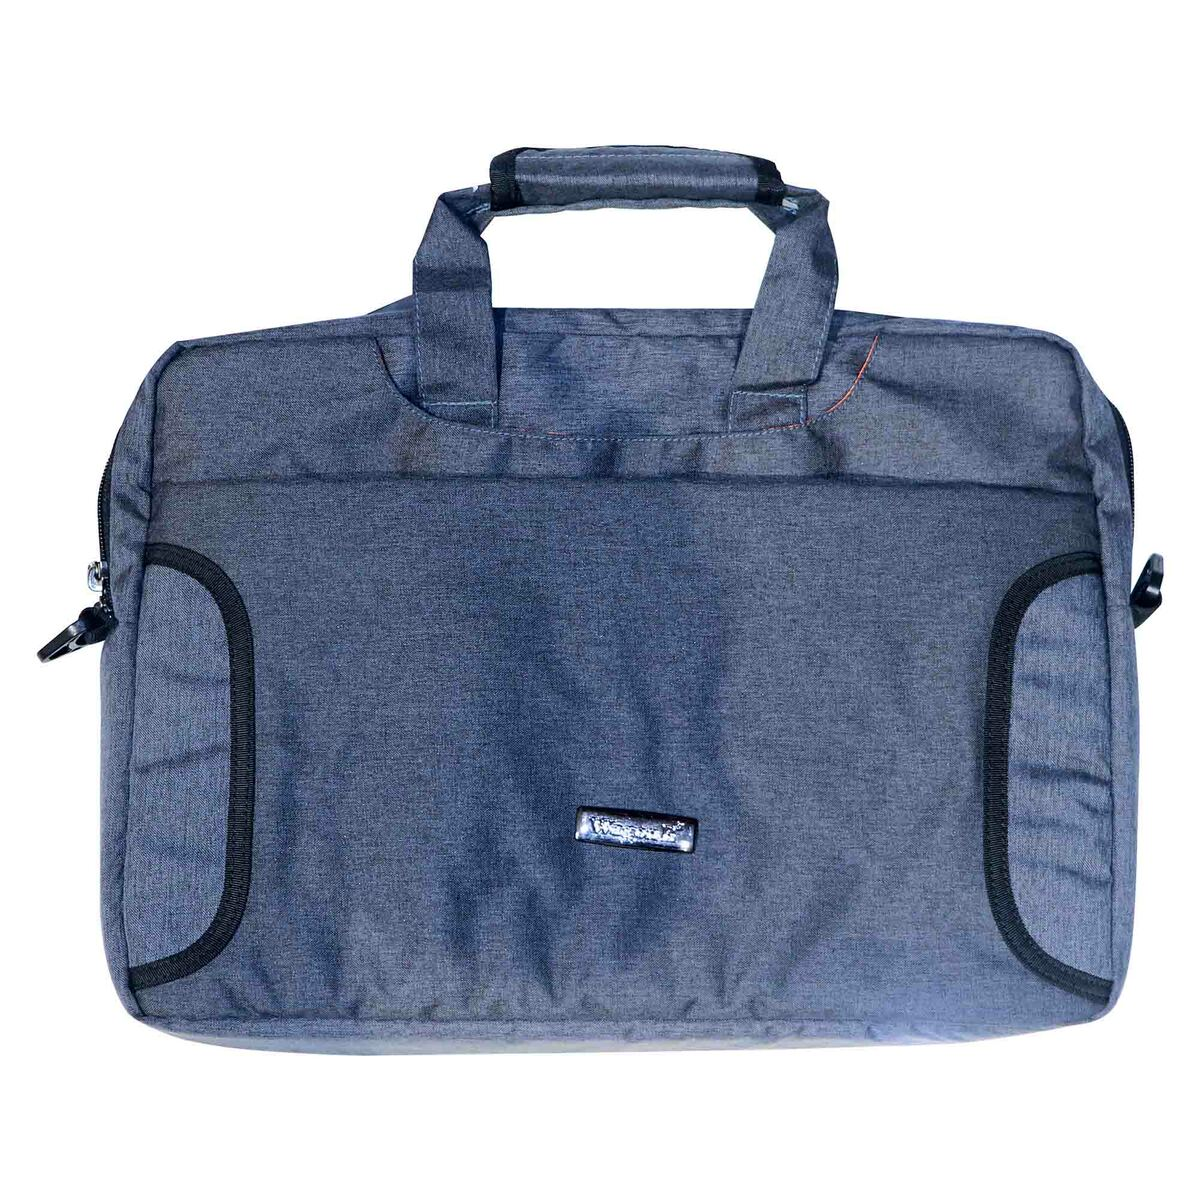 - Wagon-R Vibes Laptop Bag 5003 15.6 inches